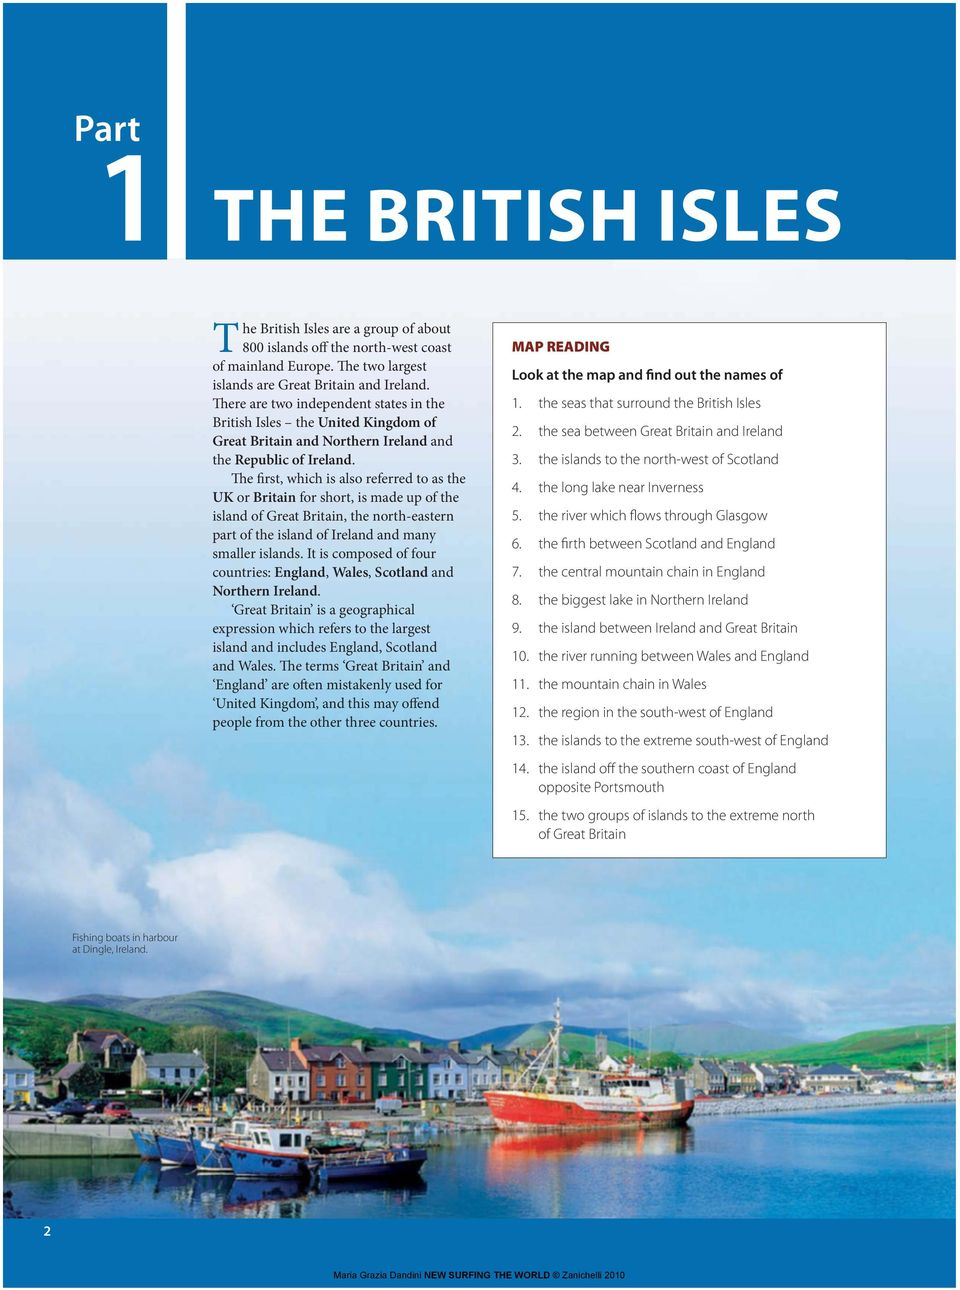 The first, which is also referred to as the UK or Britain for short, is made up of the island of Great Britain, the north-eastern part of the island of Ireland and many smaller islands.